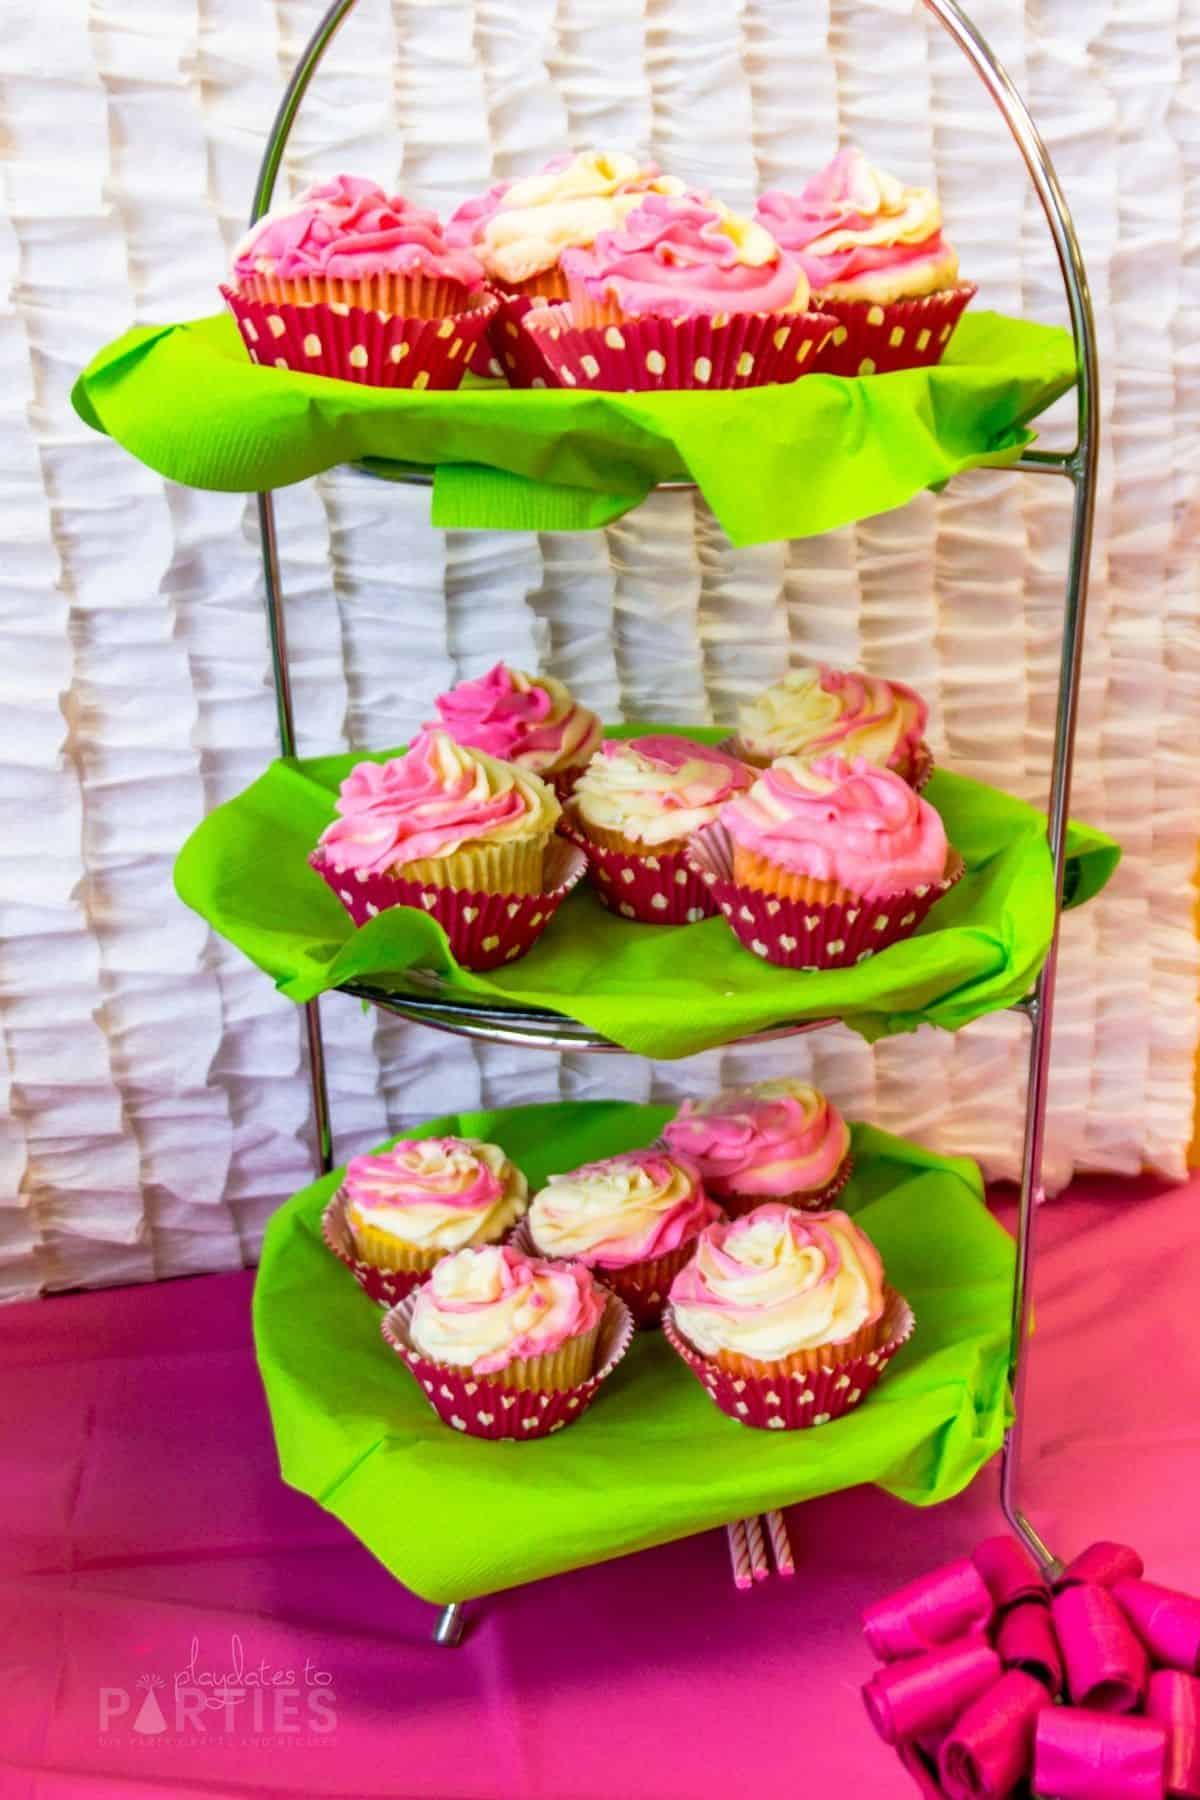 cupcakes on a three tiered tray with white and pink swirl frosting and pink cupcake liners with white polka dots